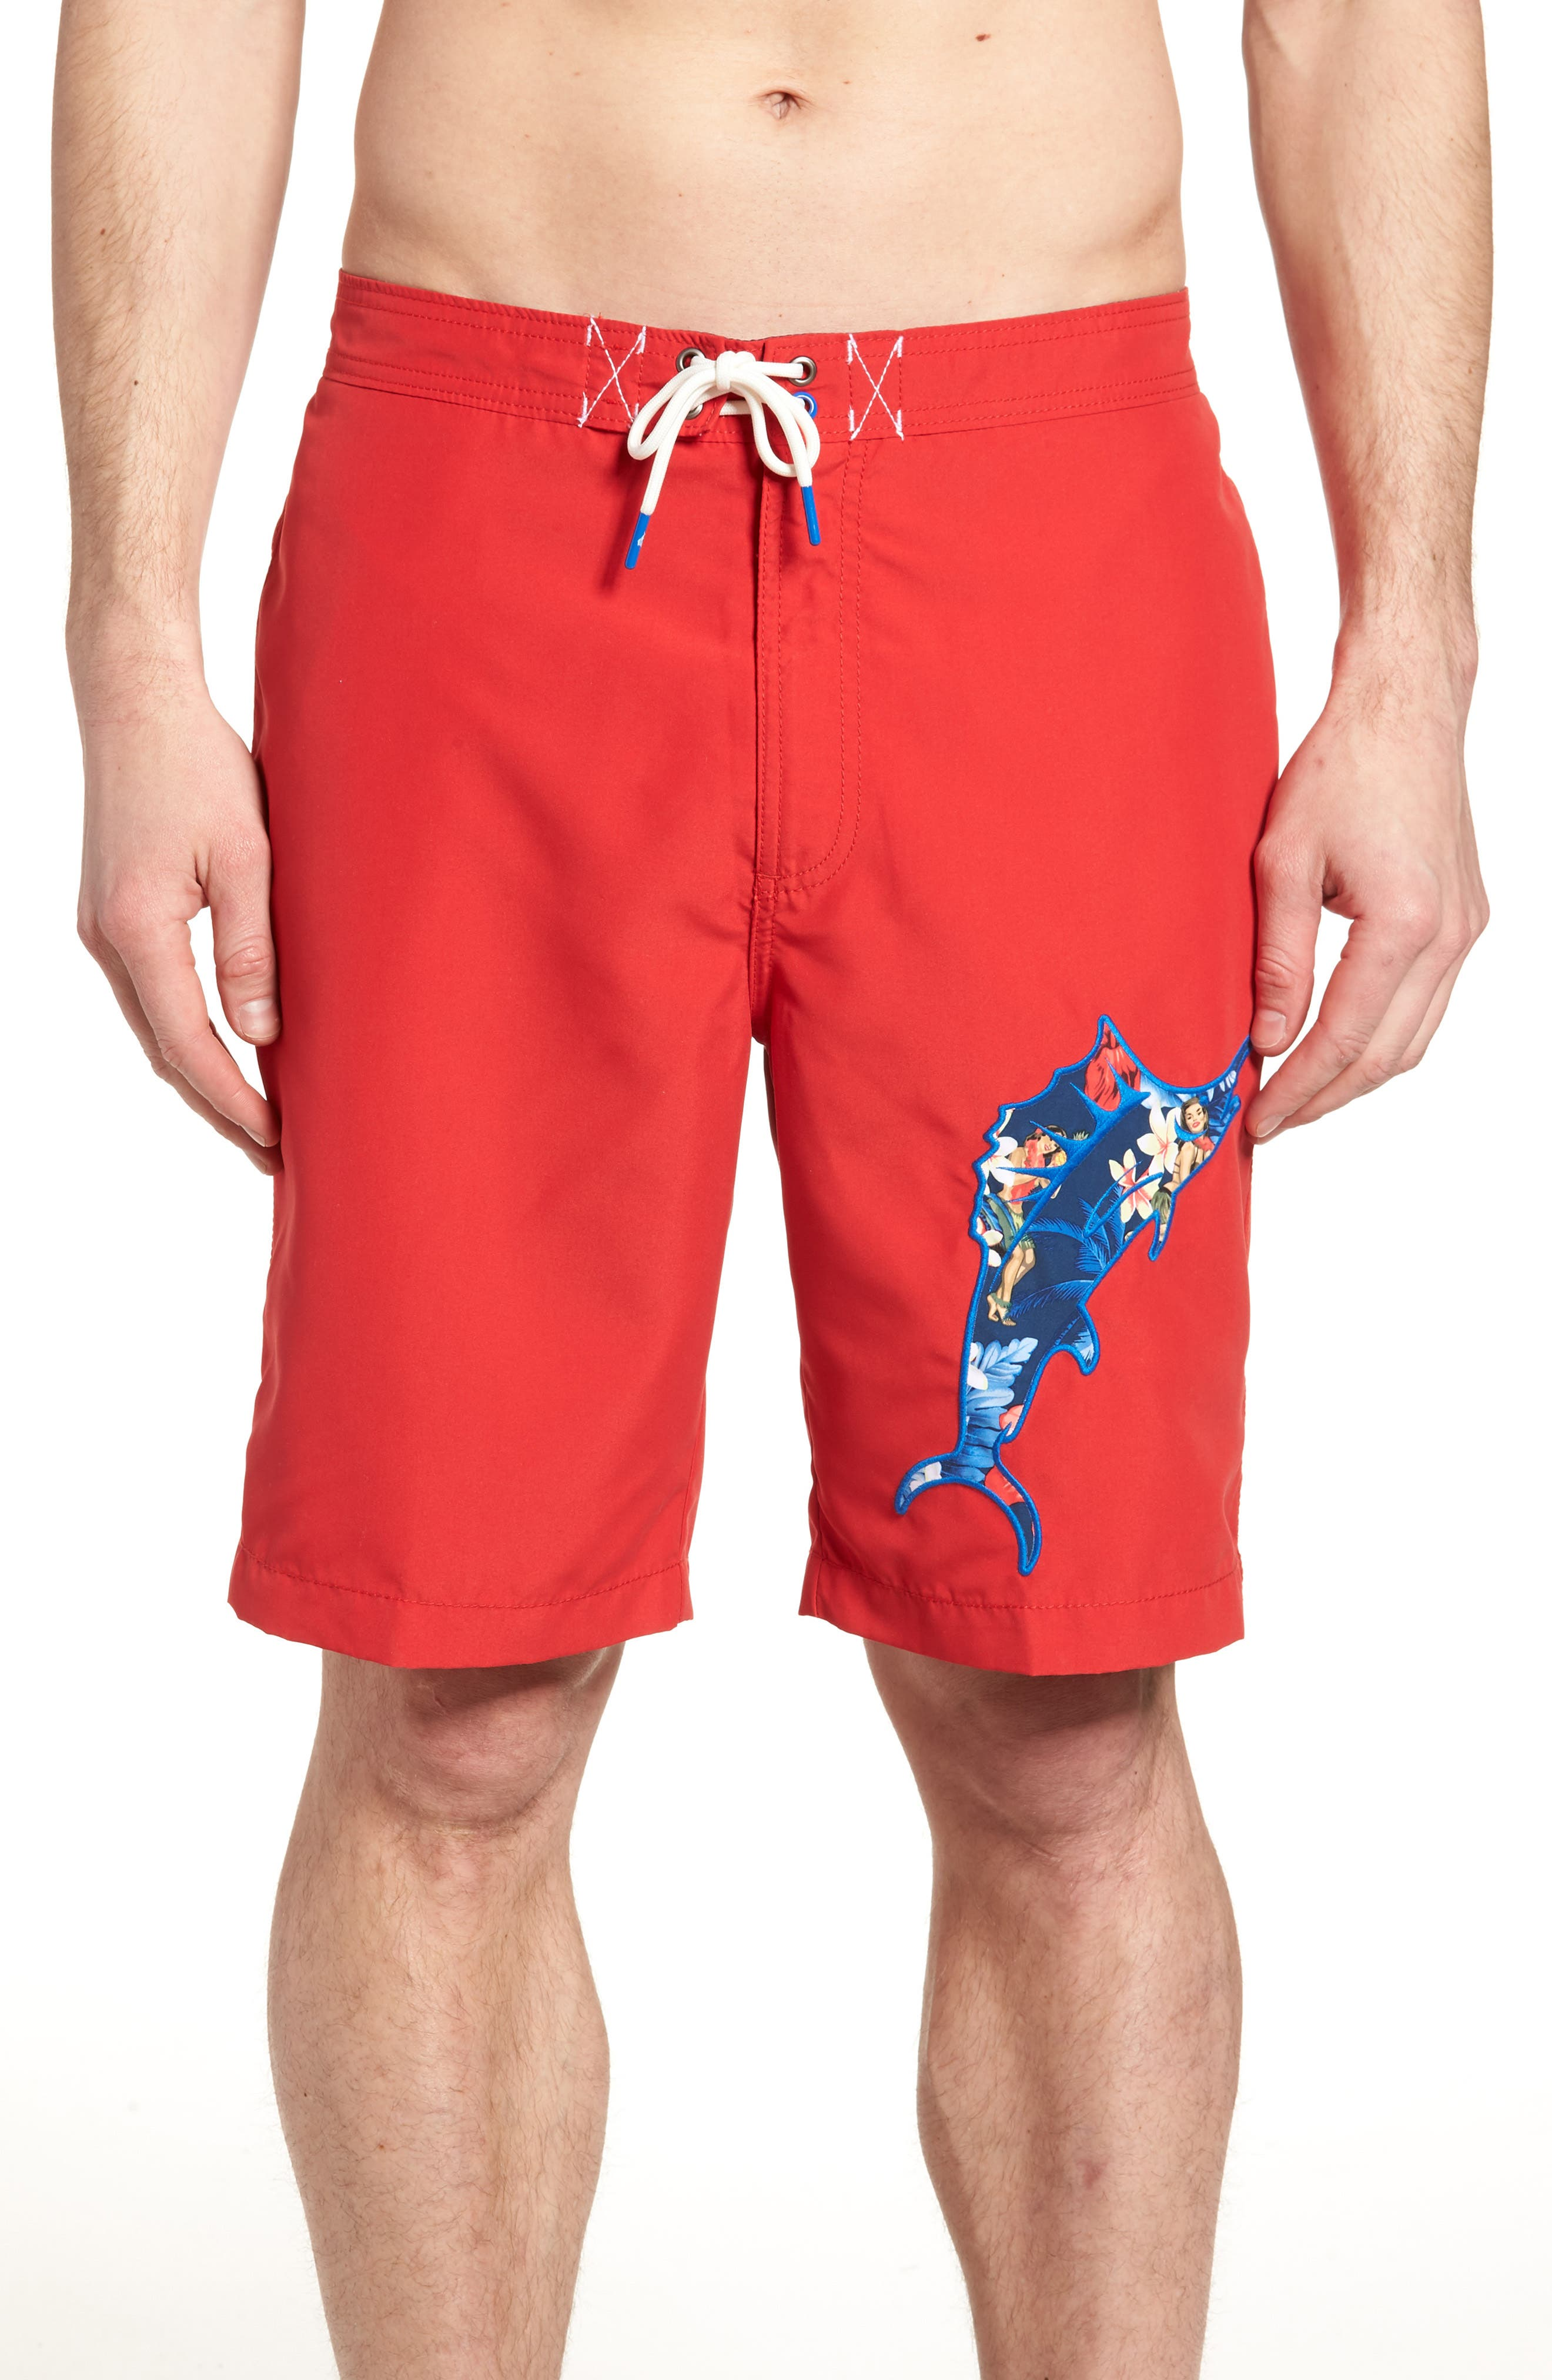 Baja Hula Holiday Marlin Board Shorts,                             Main thumbnail 1, color,                             600